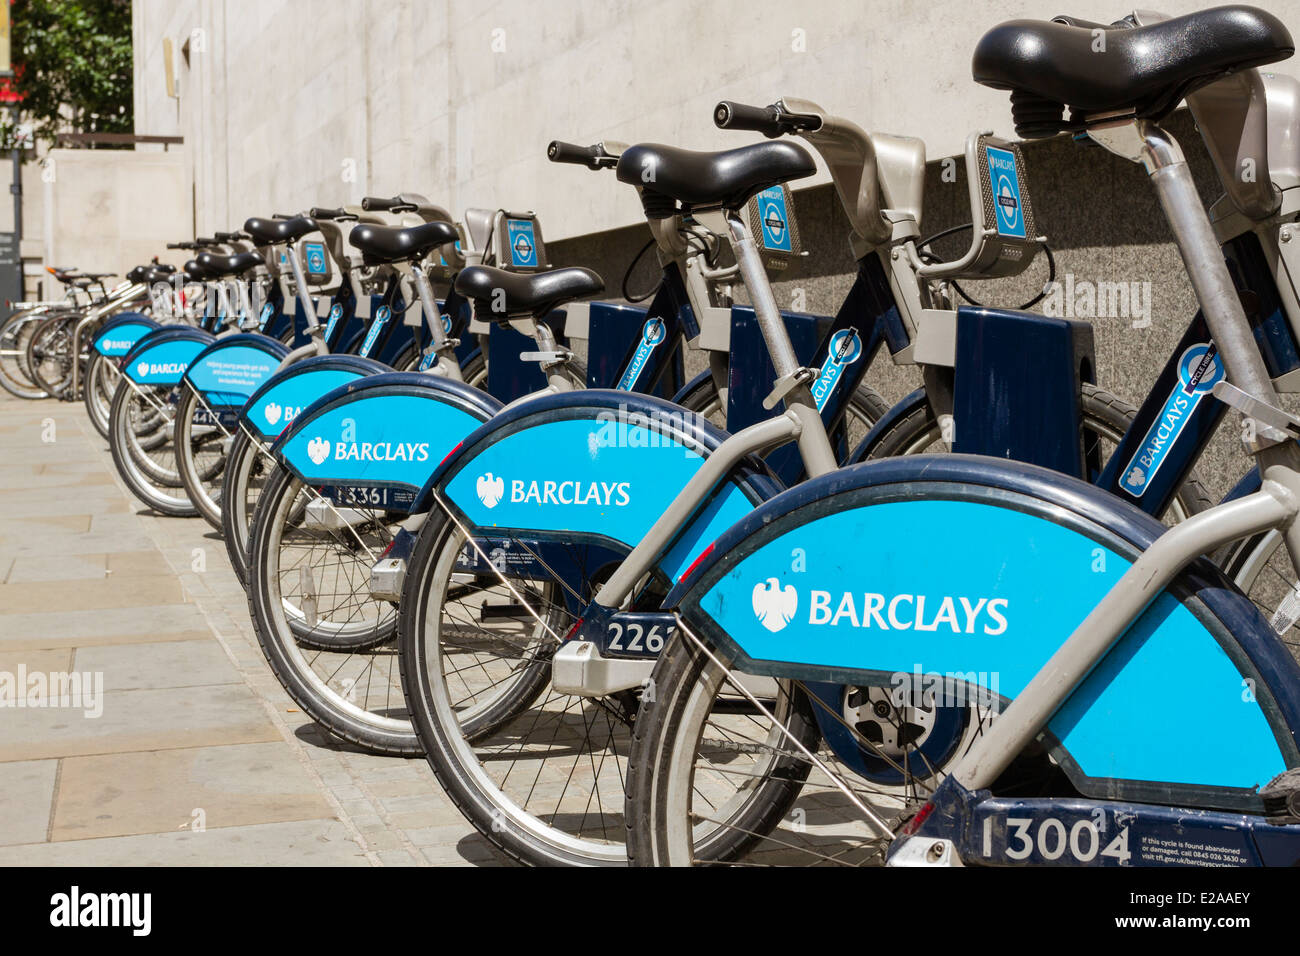 Barclays Cycle Hire,cycle hire scheme, aka Boris bikes lined up at docking station, London, England, UK - Stock Image